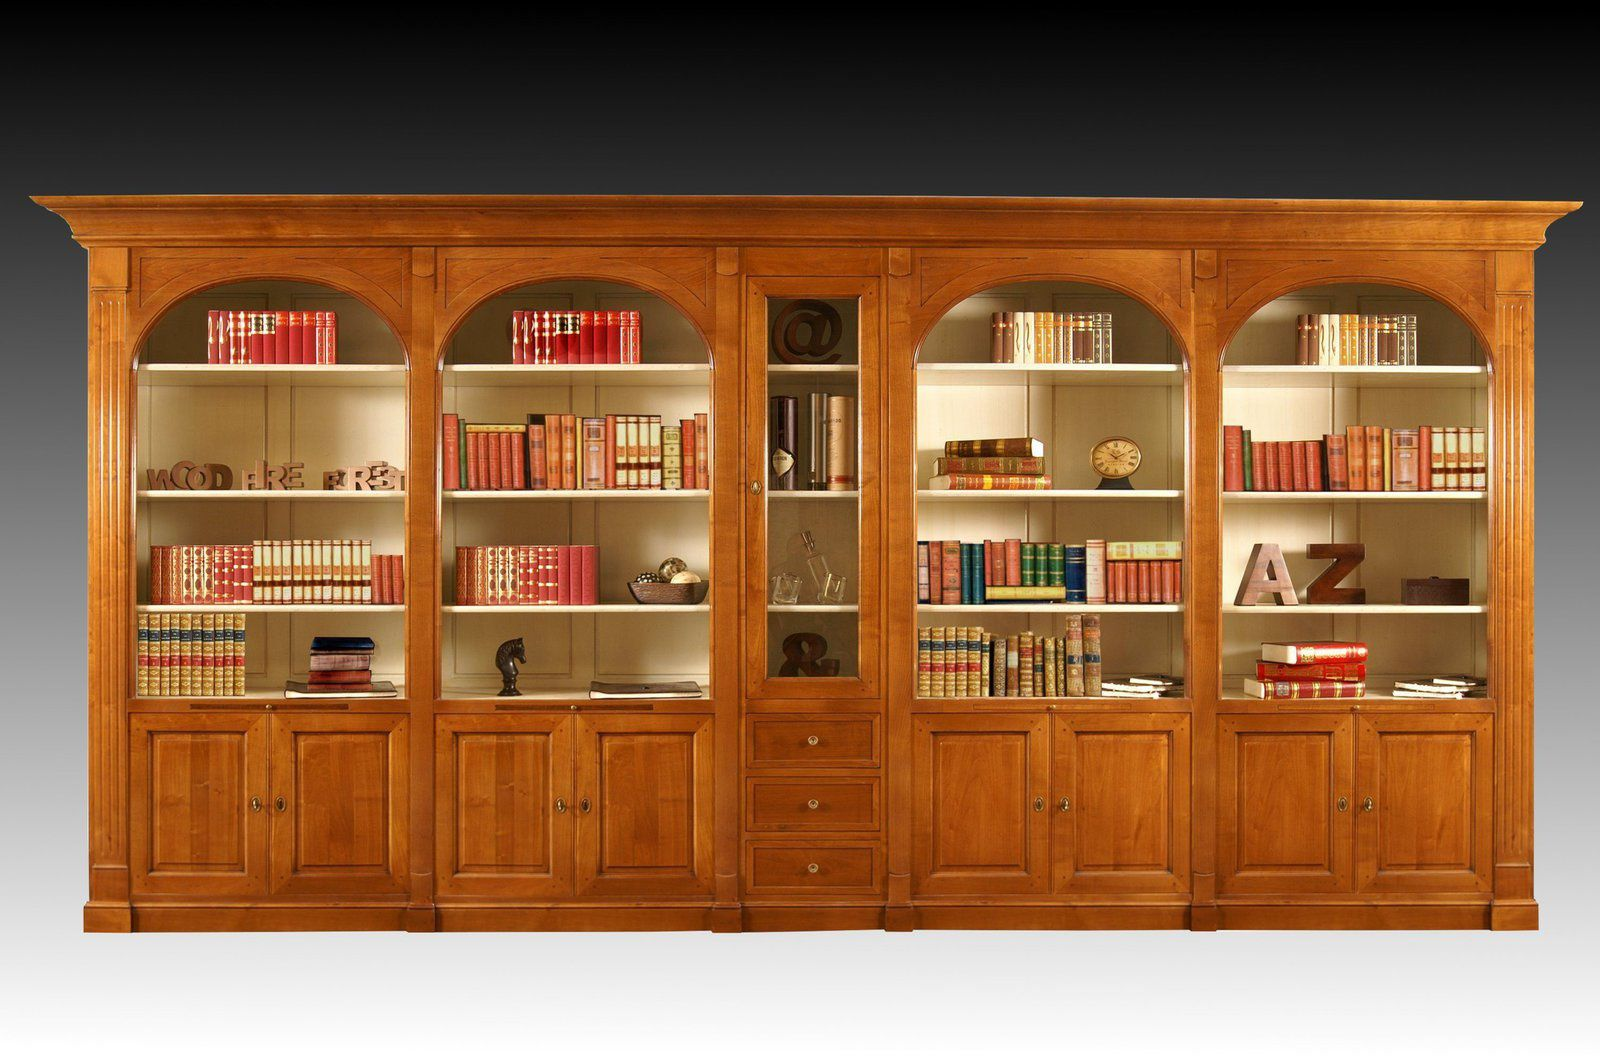 meuble biblioth que sur mesure en bois massif. Black Bedroom Furniture Sets. Home Design Ideas